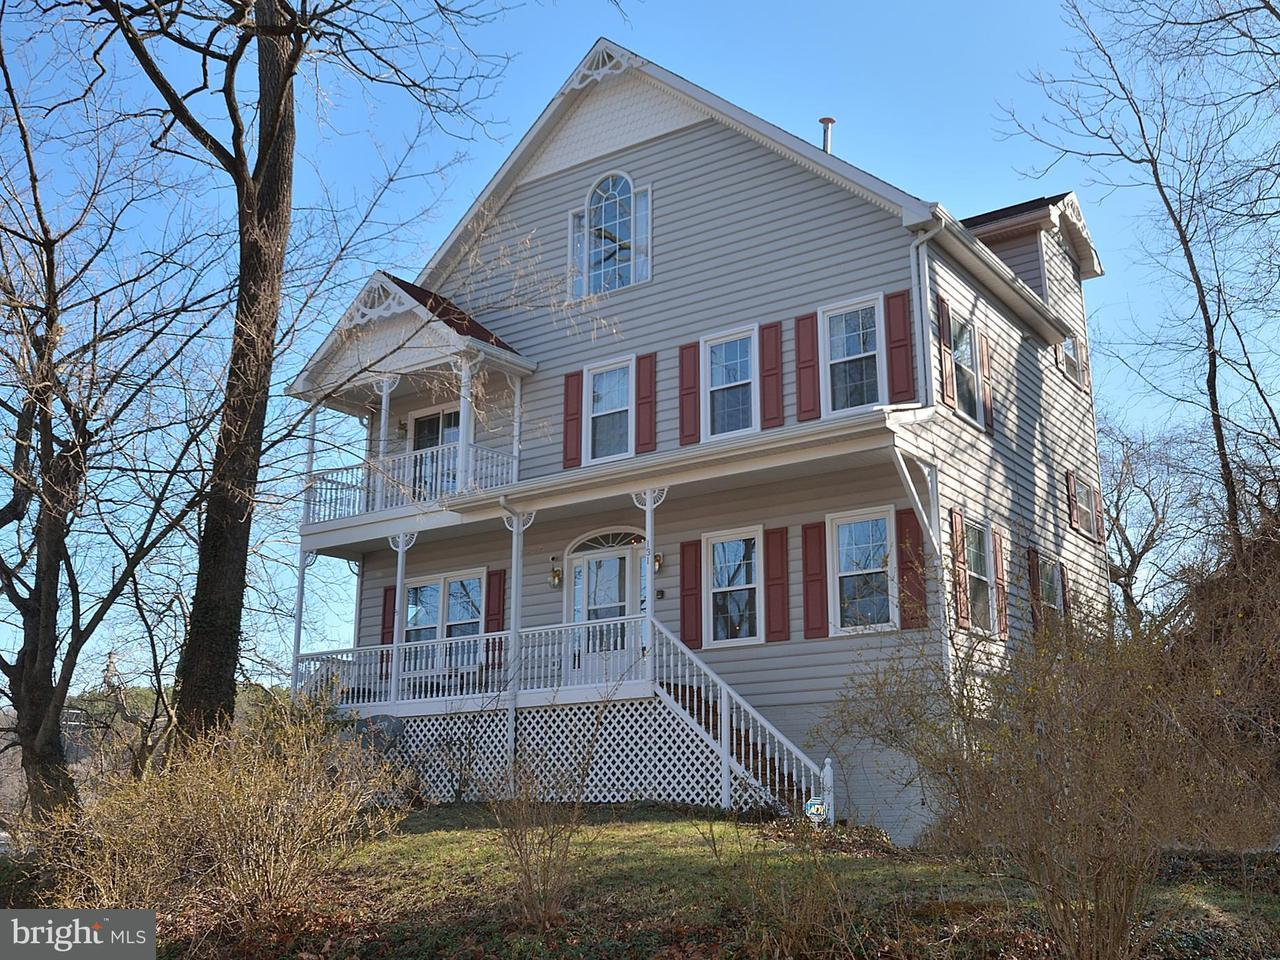 Maison unifamiliale pour l Vente à 131 Washington Street 131 Washington Street Occoquan, Virginia 22125 États-Unis